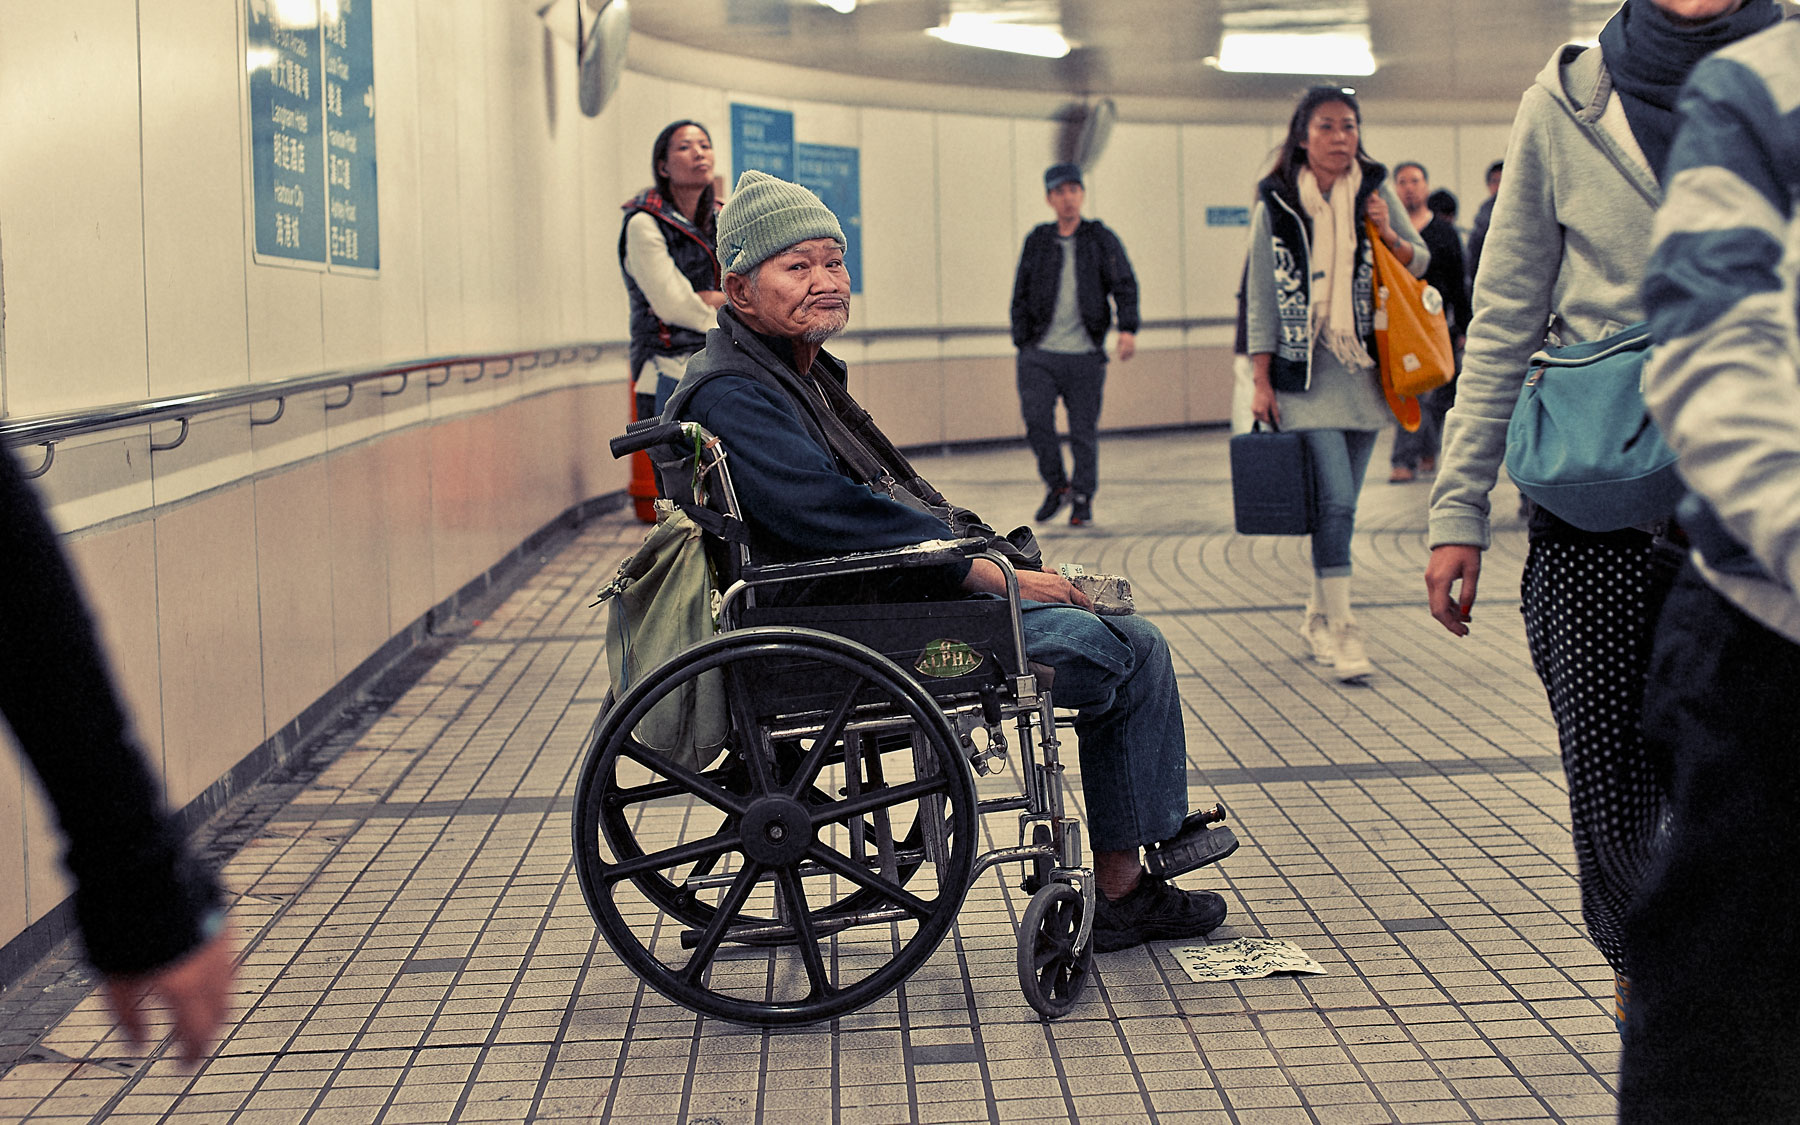 Good Boy Wolf Photographer, filmic portrait, man in a wheel chair in a subway tunnel